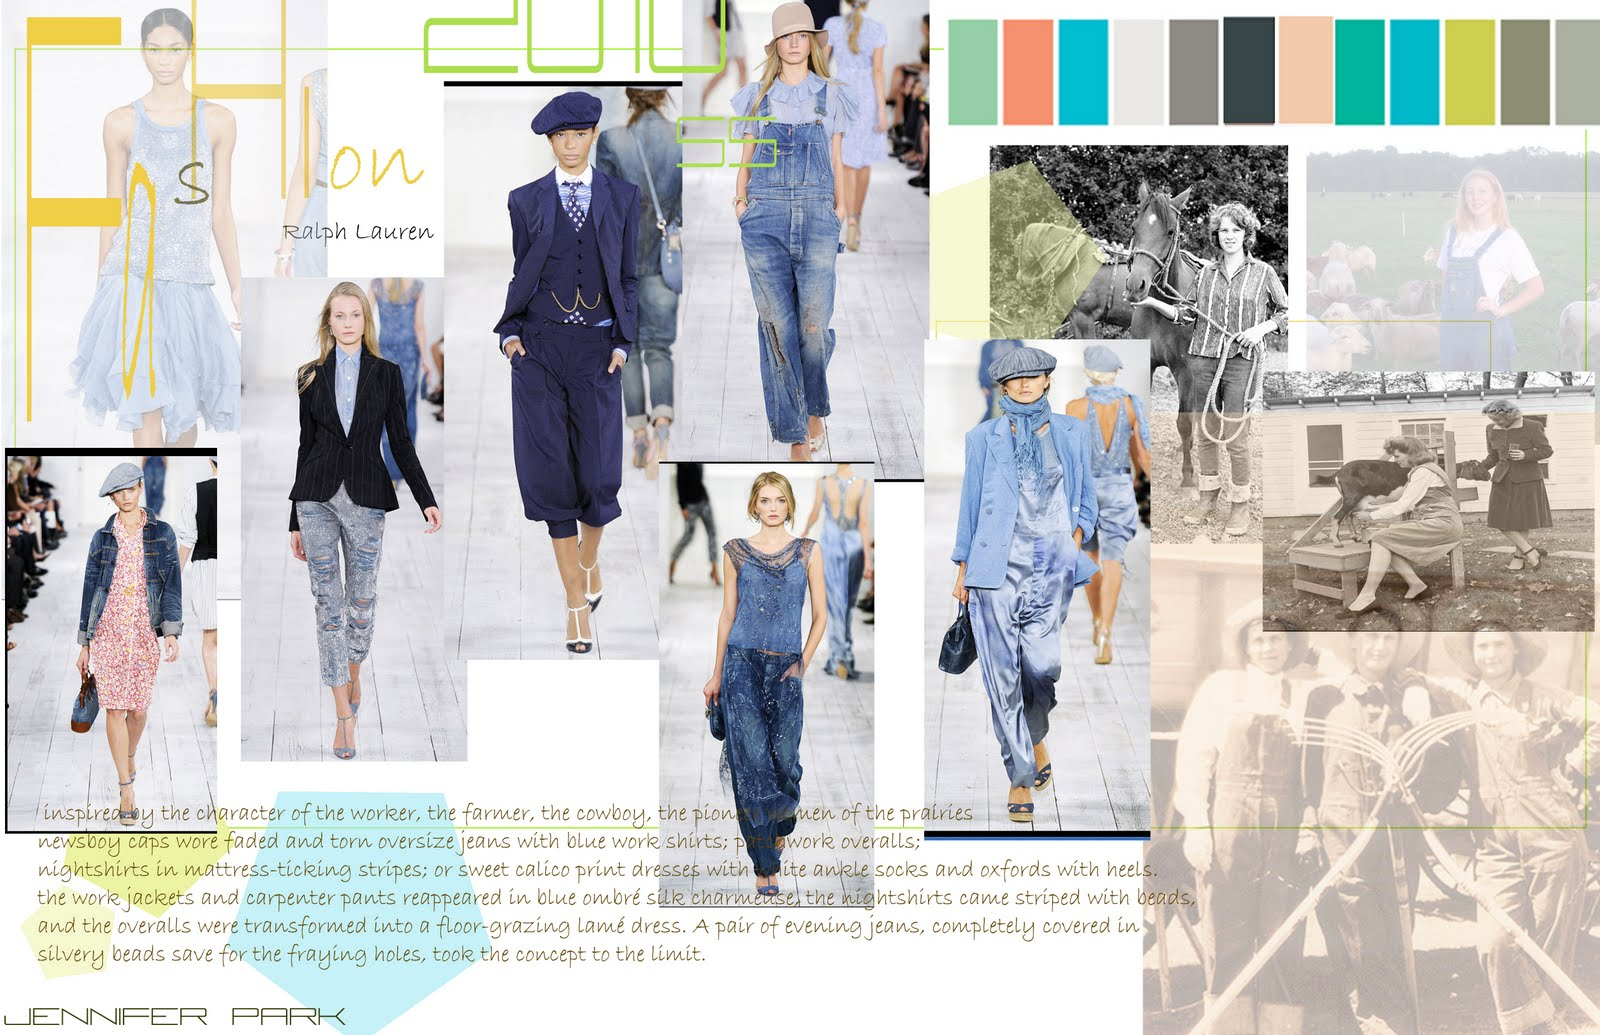 How Do You Learn Fashion Design Online?